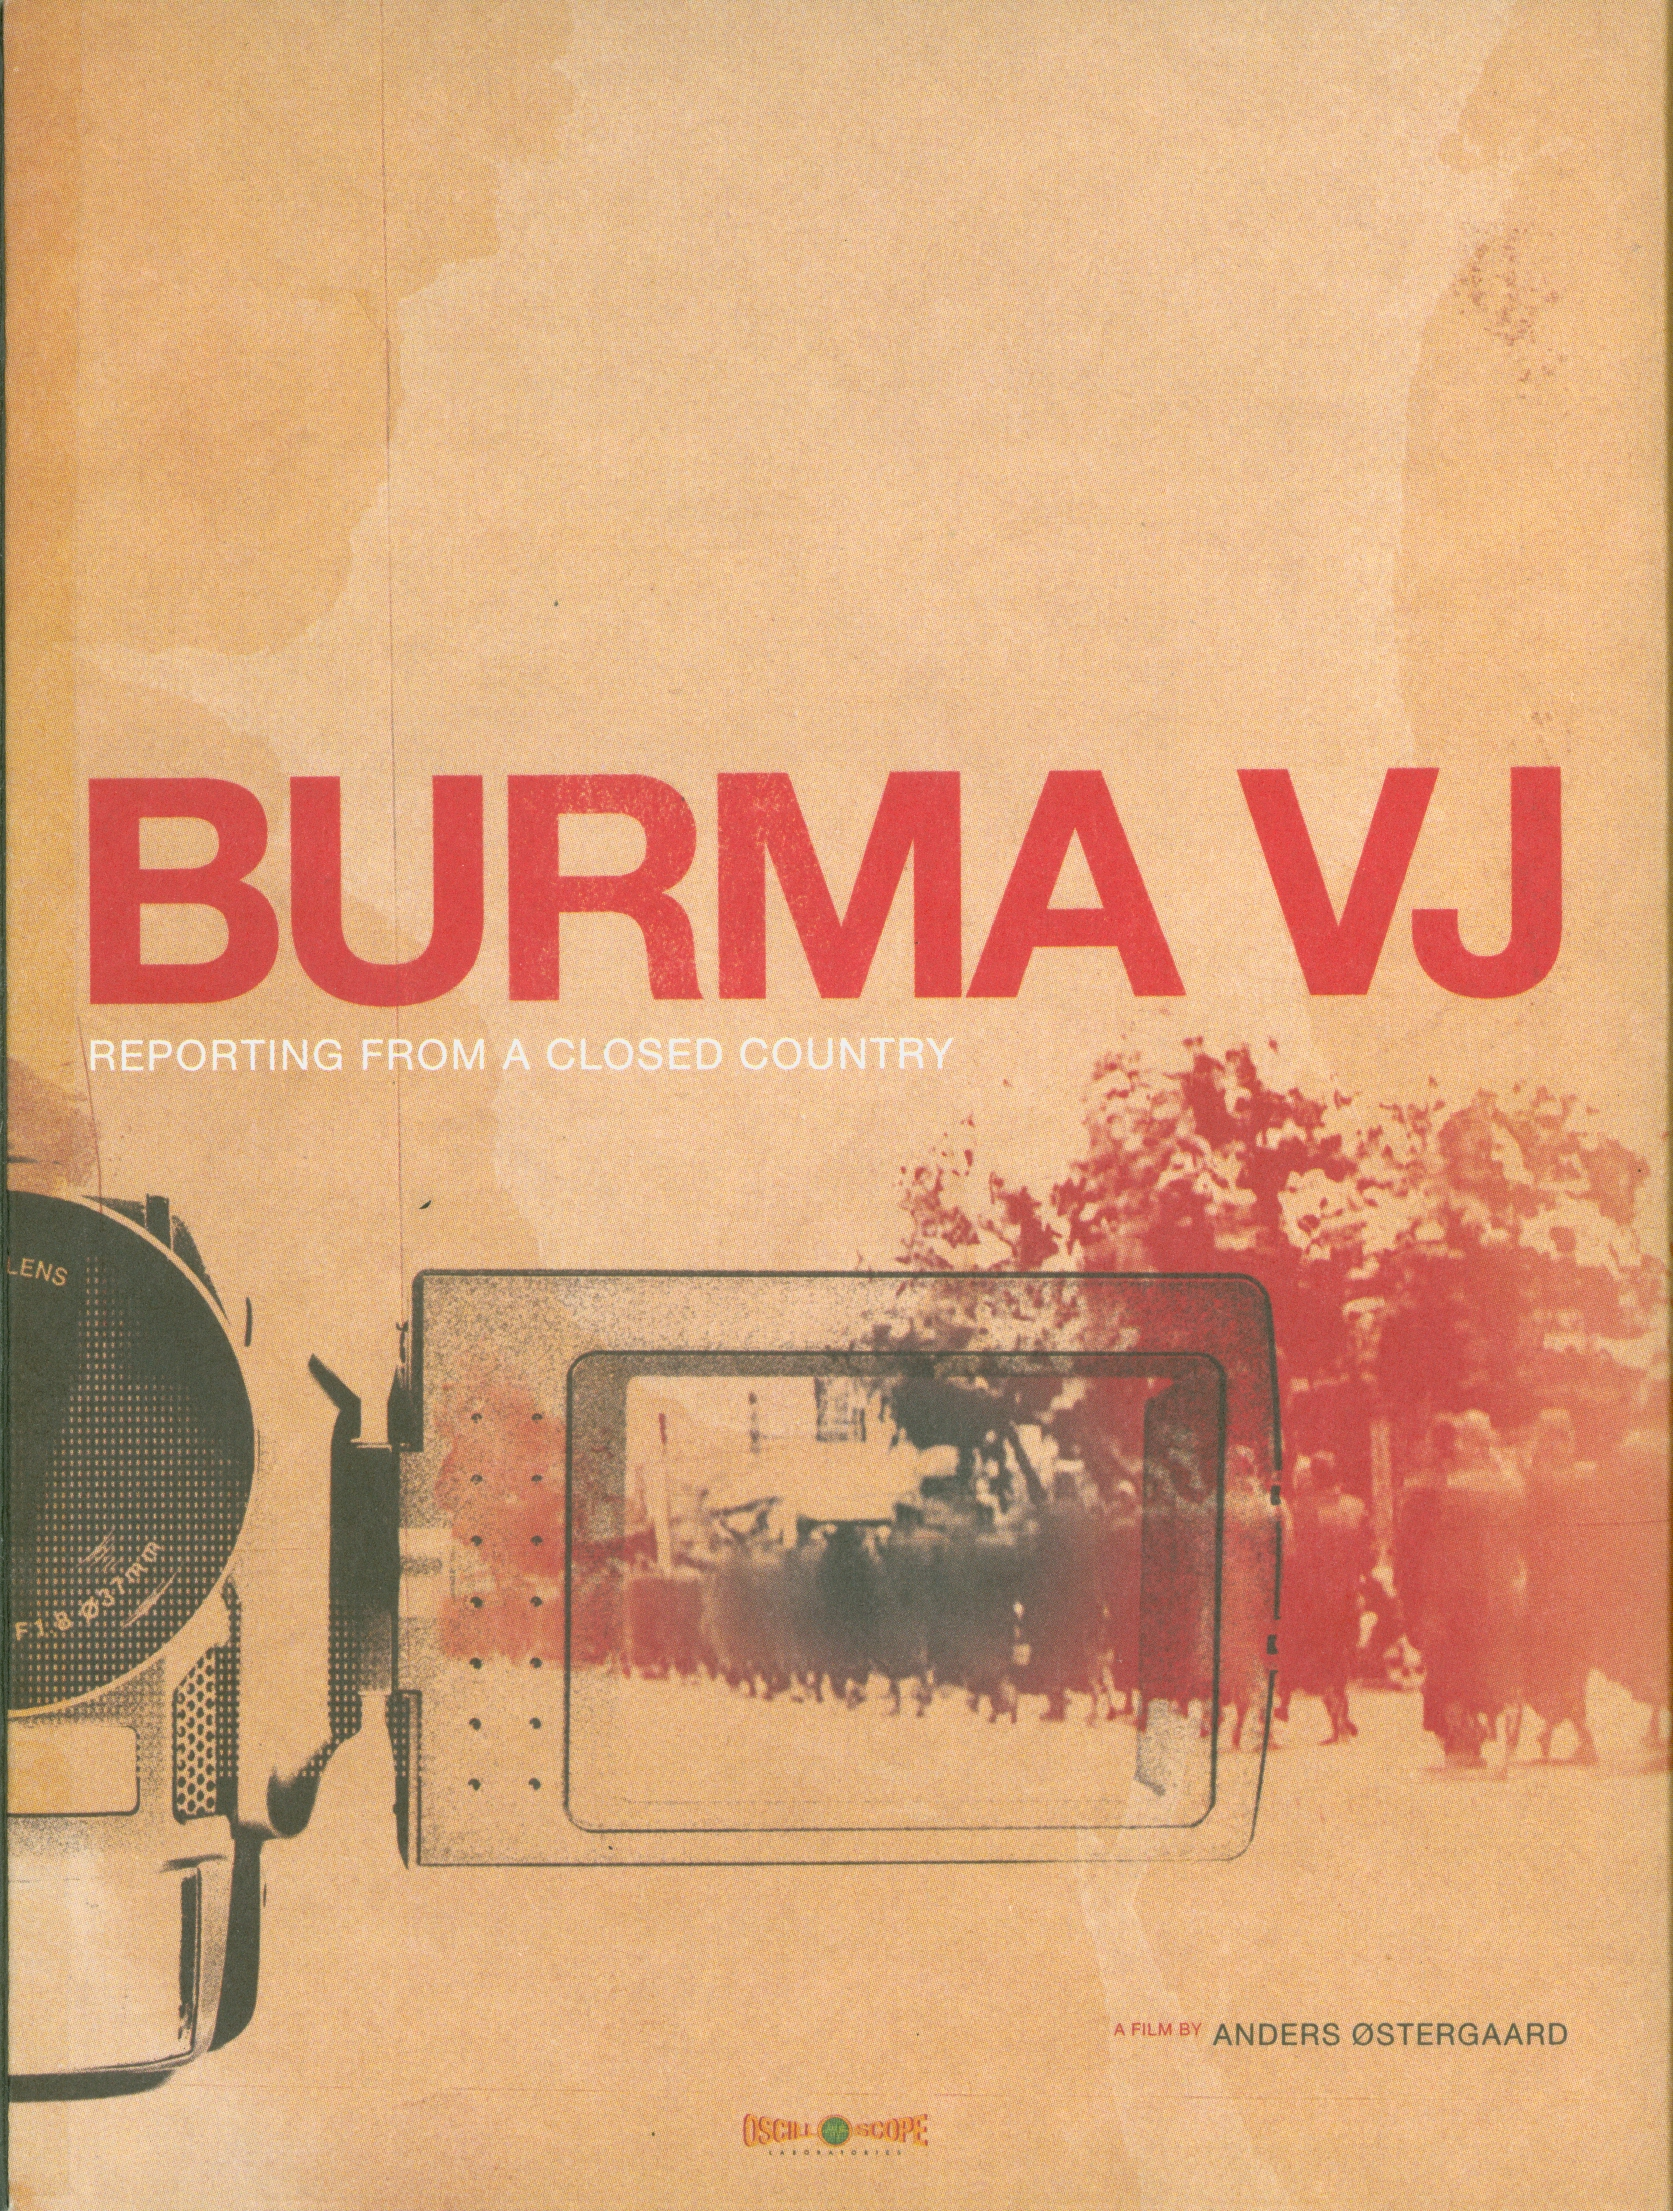 Burma VJ[videorecording] :reporting from a closed country /Magic Hour Films presents ; in co-production with WG Film and Mediamente ; Kamoli Films ; a film by Anders Ostergaard ; script by Anders Ostergaard & Jan Krogsgaard ; produced by Lise-Lense Moller ; director, Anders Ostergaard||Burma VJ : reporting from a closed country